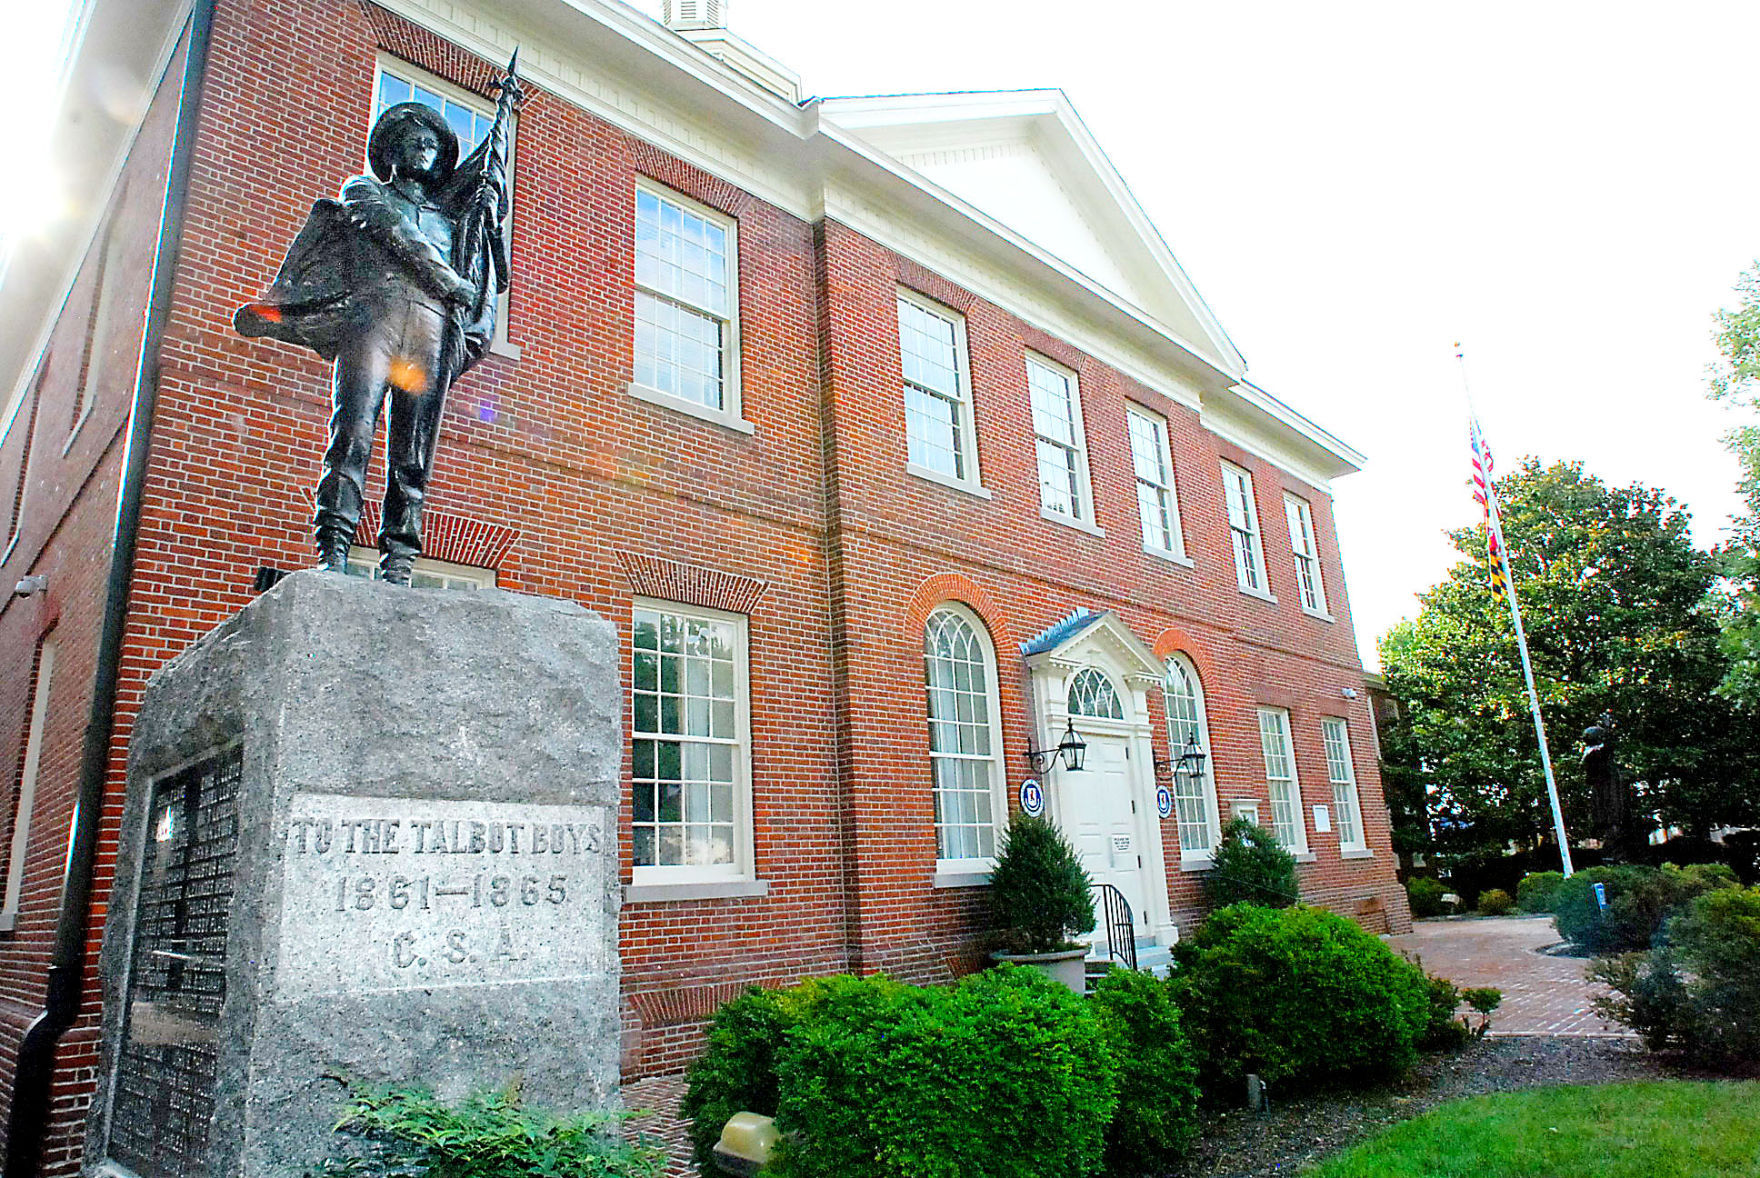 Council to decide on 'Talbot Boys' monument Nov. 24